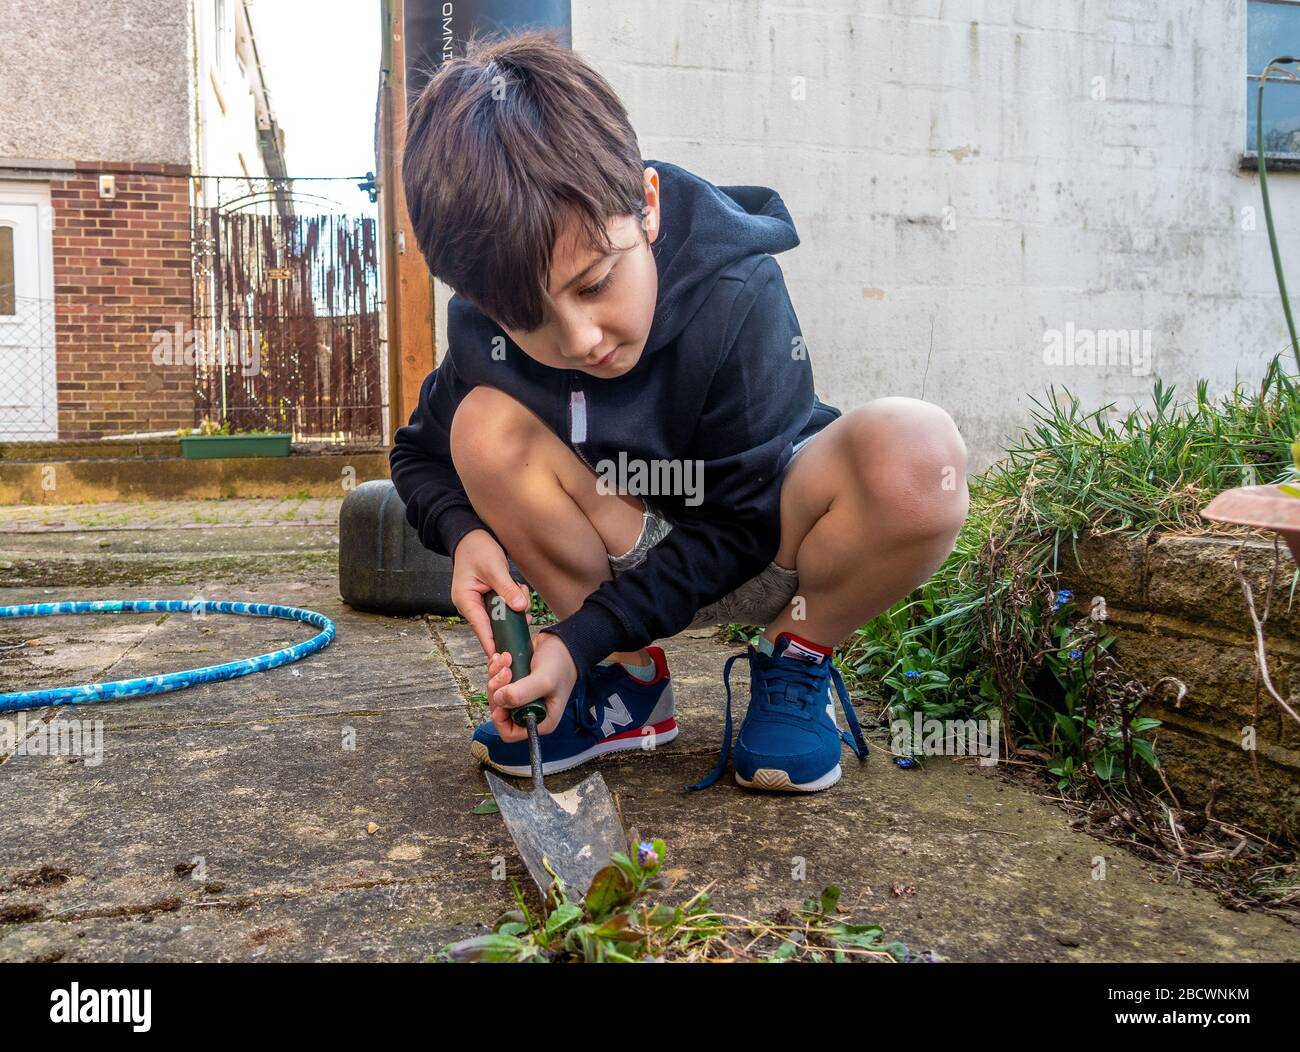 a-young-boy-digging-up-weeds-using-a-hand-trowel-in-the-garden-2BCWNKM.jpg